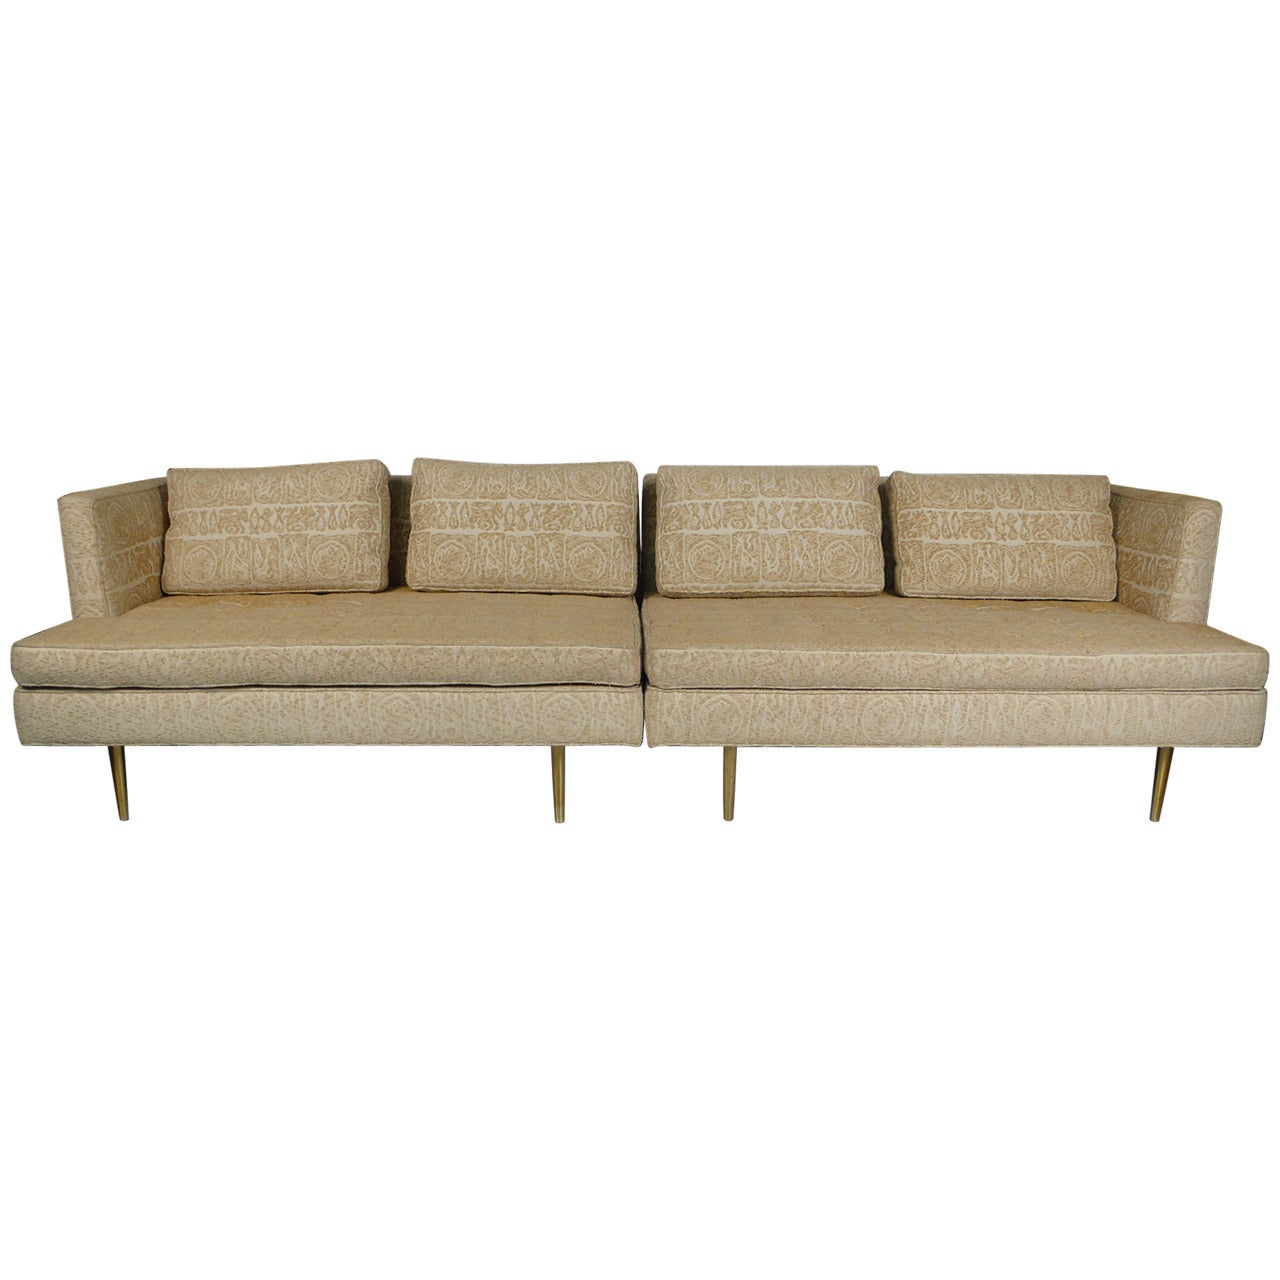 Edward Wormley for Dunbar Even Arm Sofa or Settees